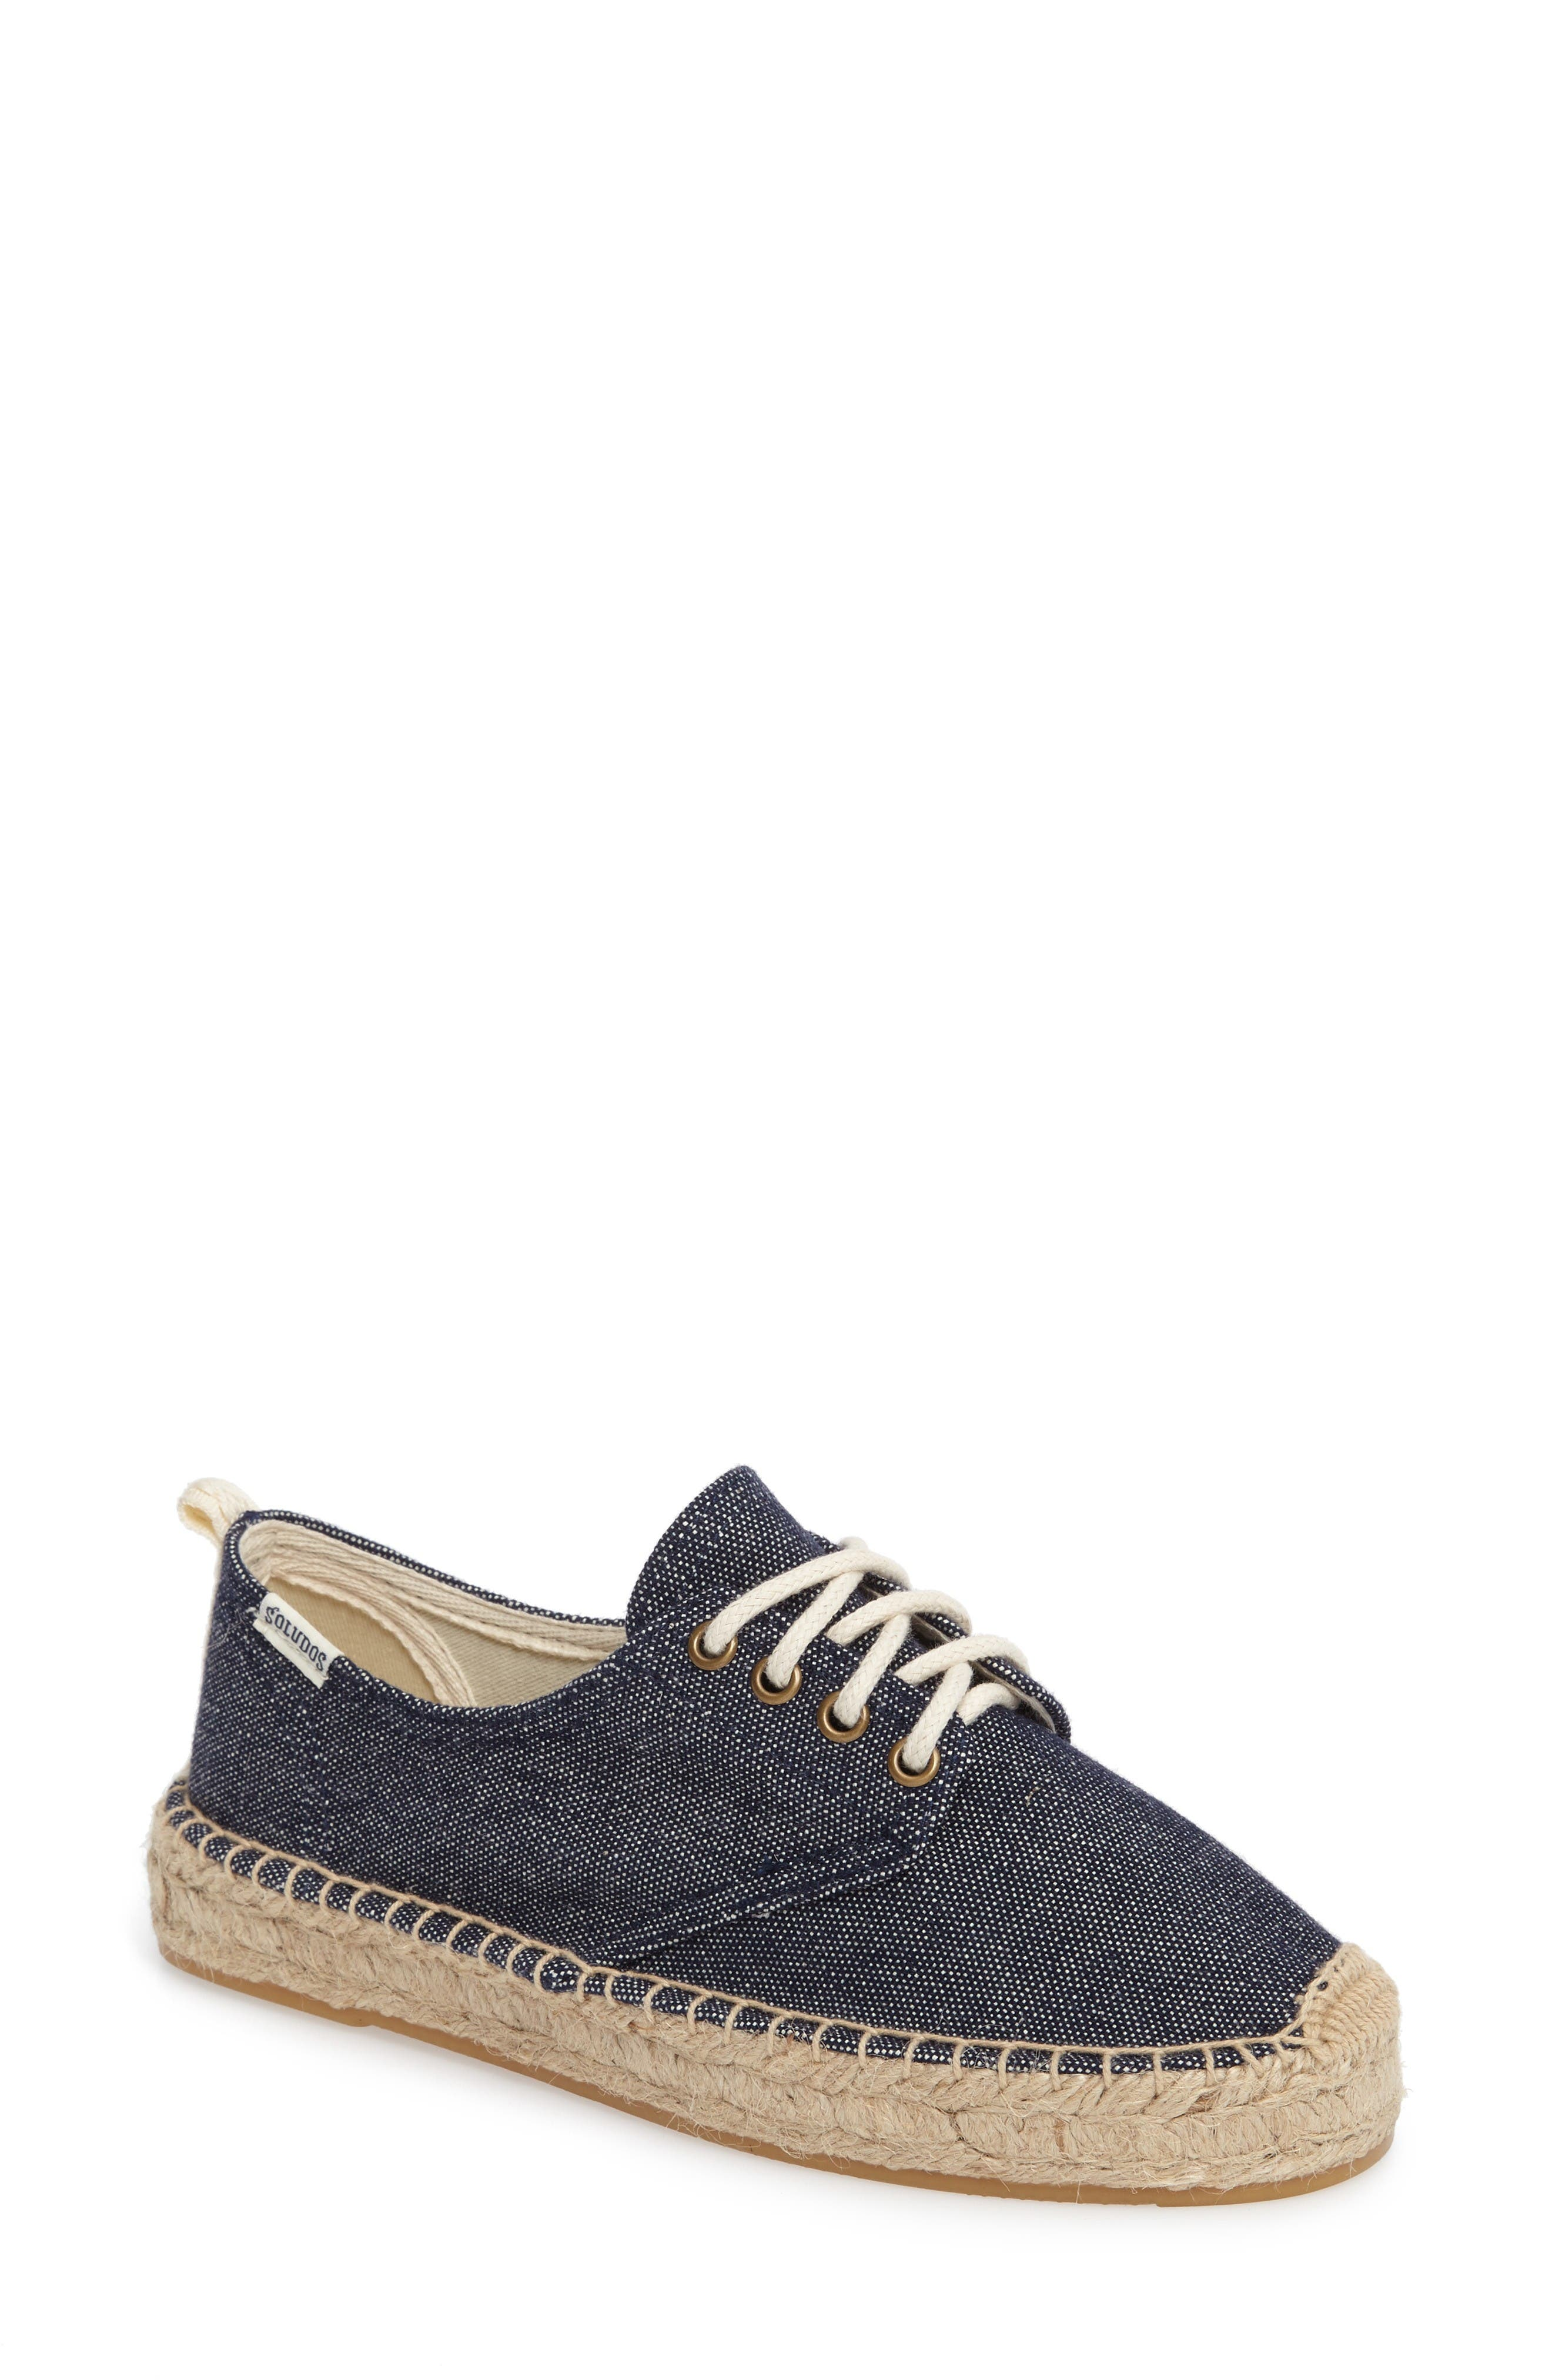 Espadrille Oxford,                         Main,                         color, Navy Canvas